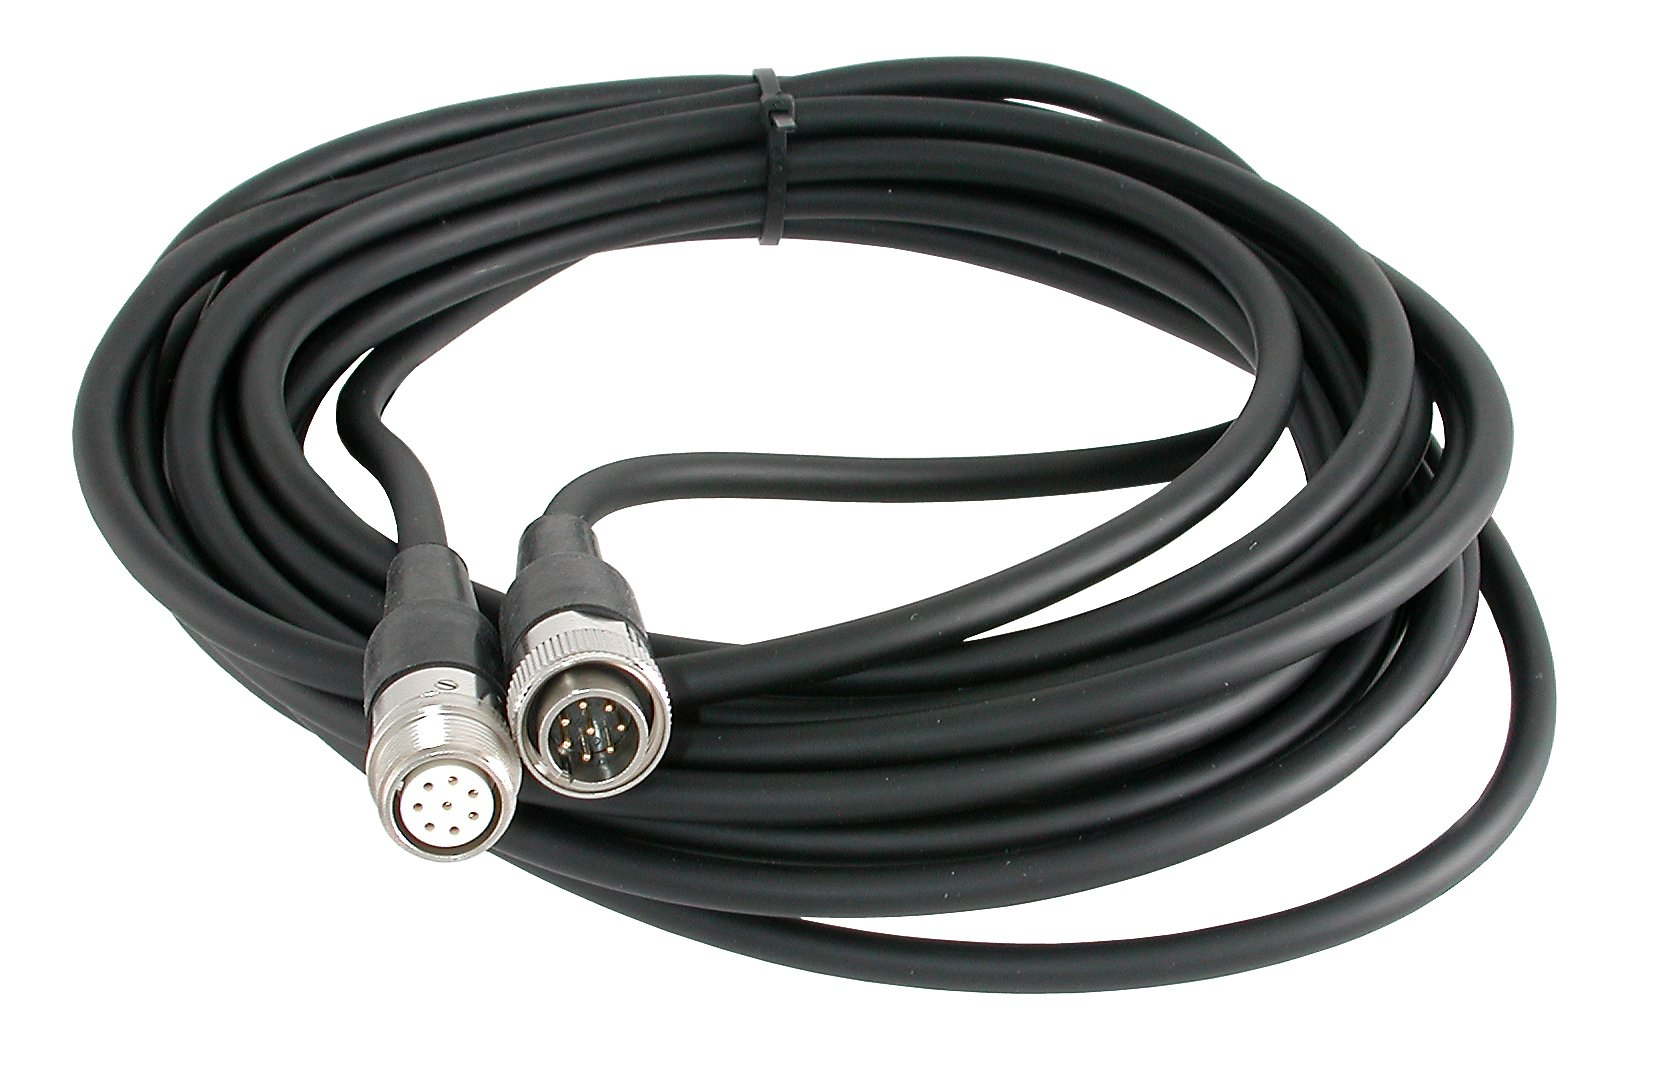 Varizoom 20-Foot Extension Cables for 8 Pin Zoom on Manual Controllers (Fujinon and Canon Zoom Lenses) by Varizoom Lens Controls